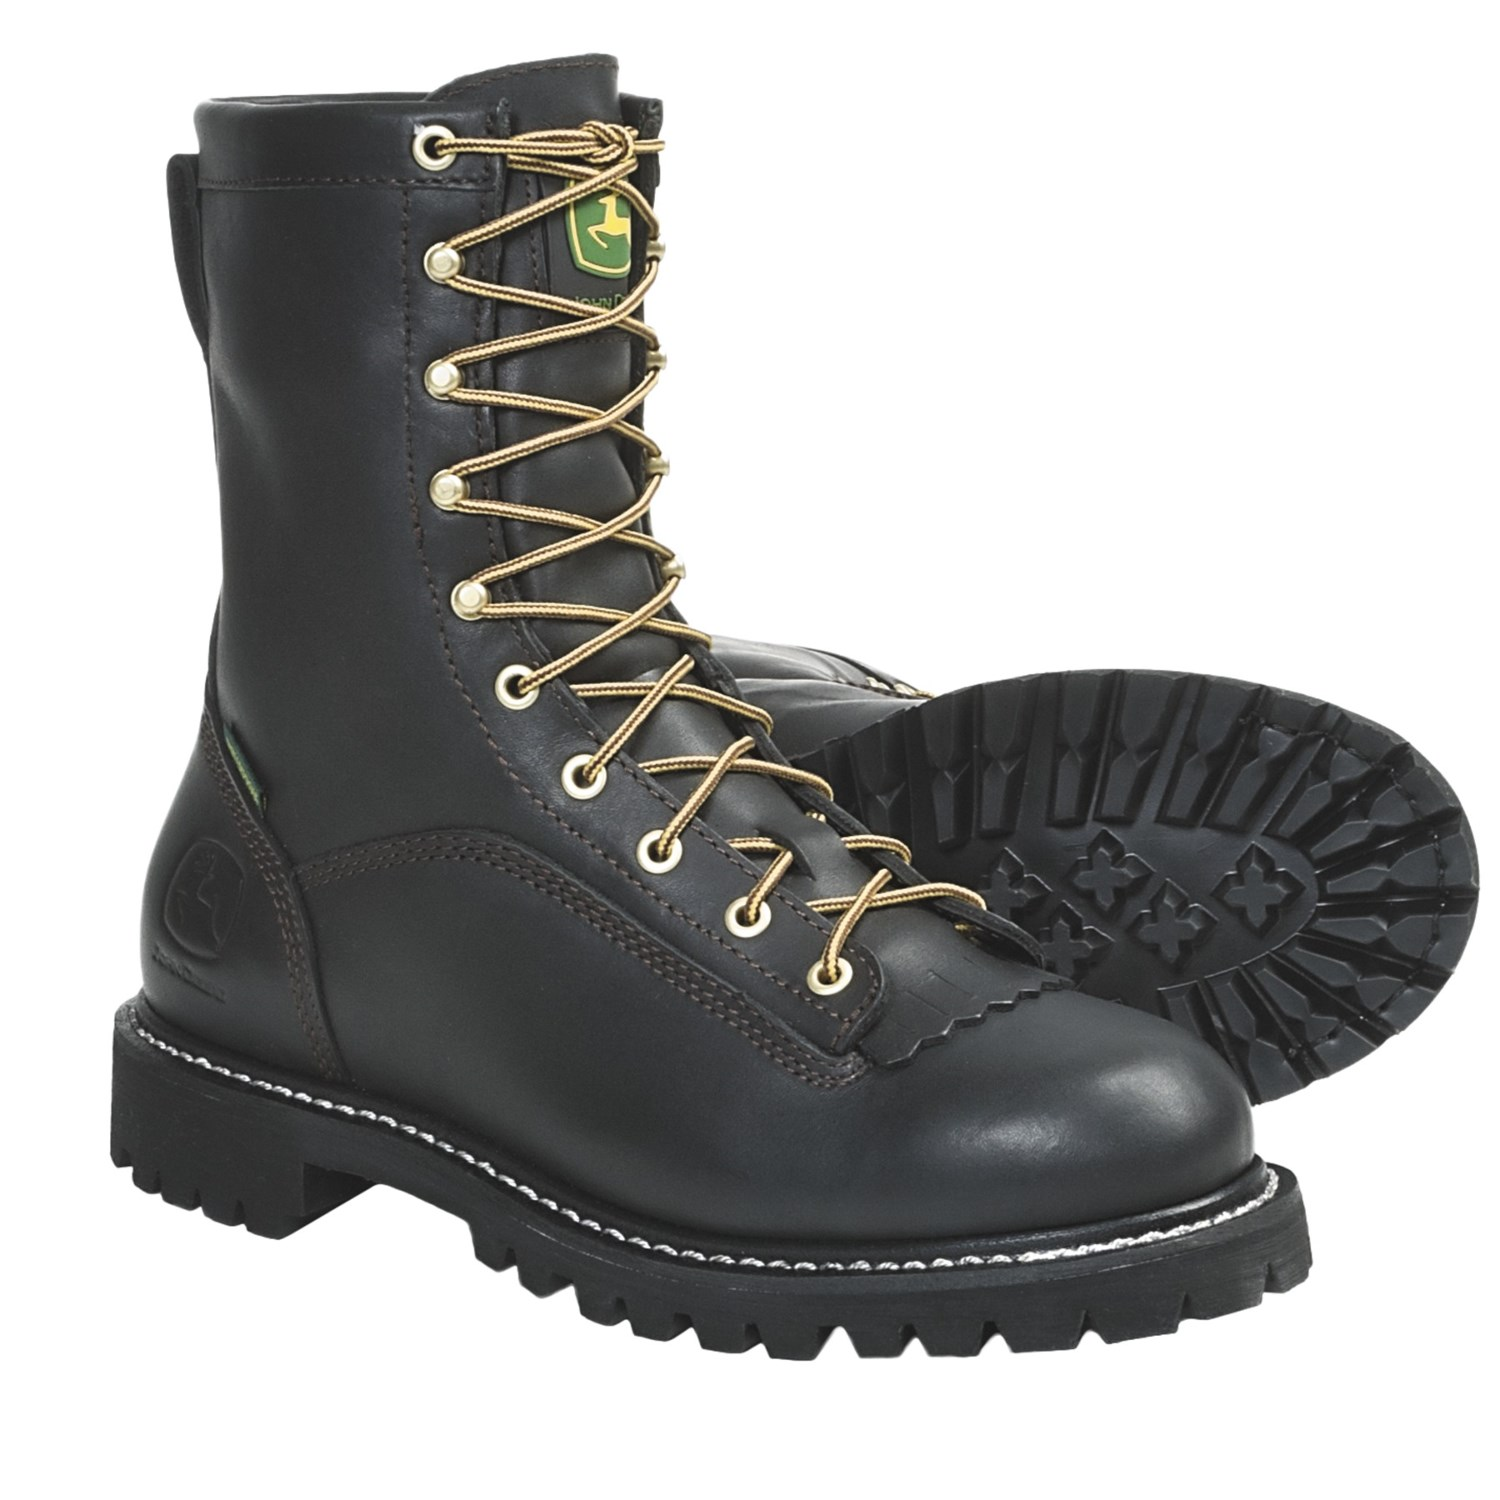 deere footwear 9 logger work boots waterproof